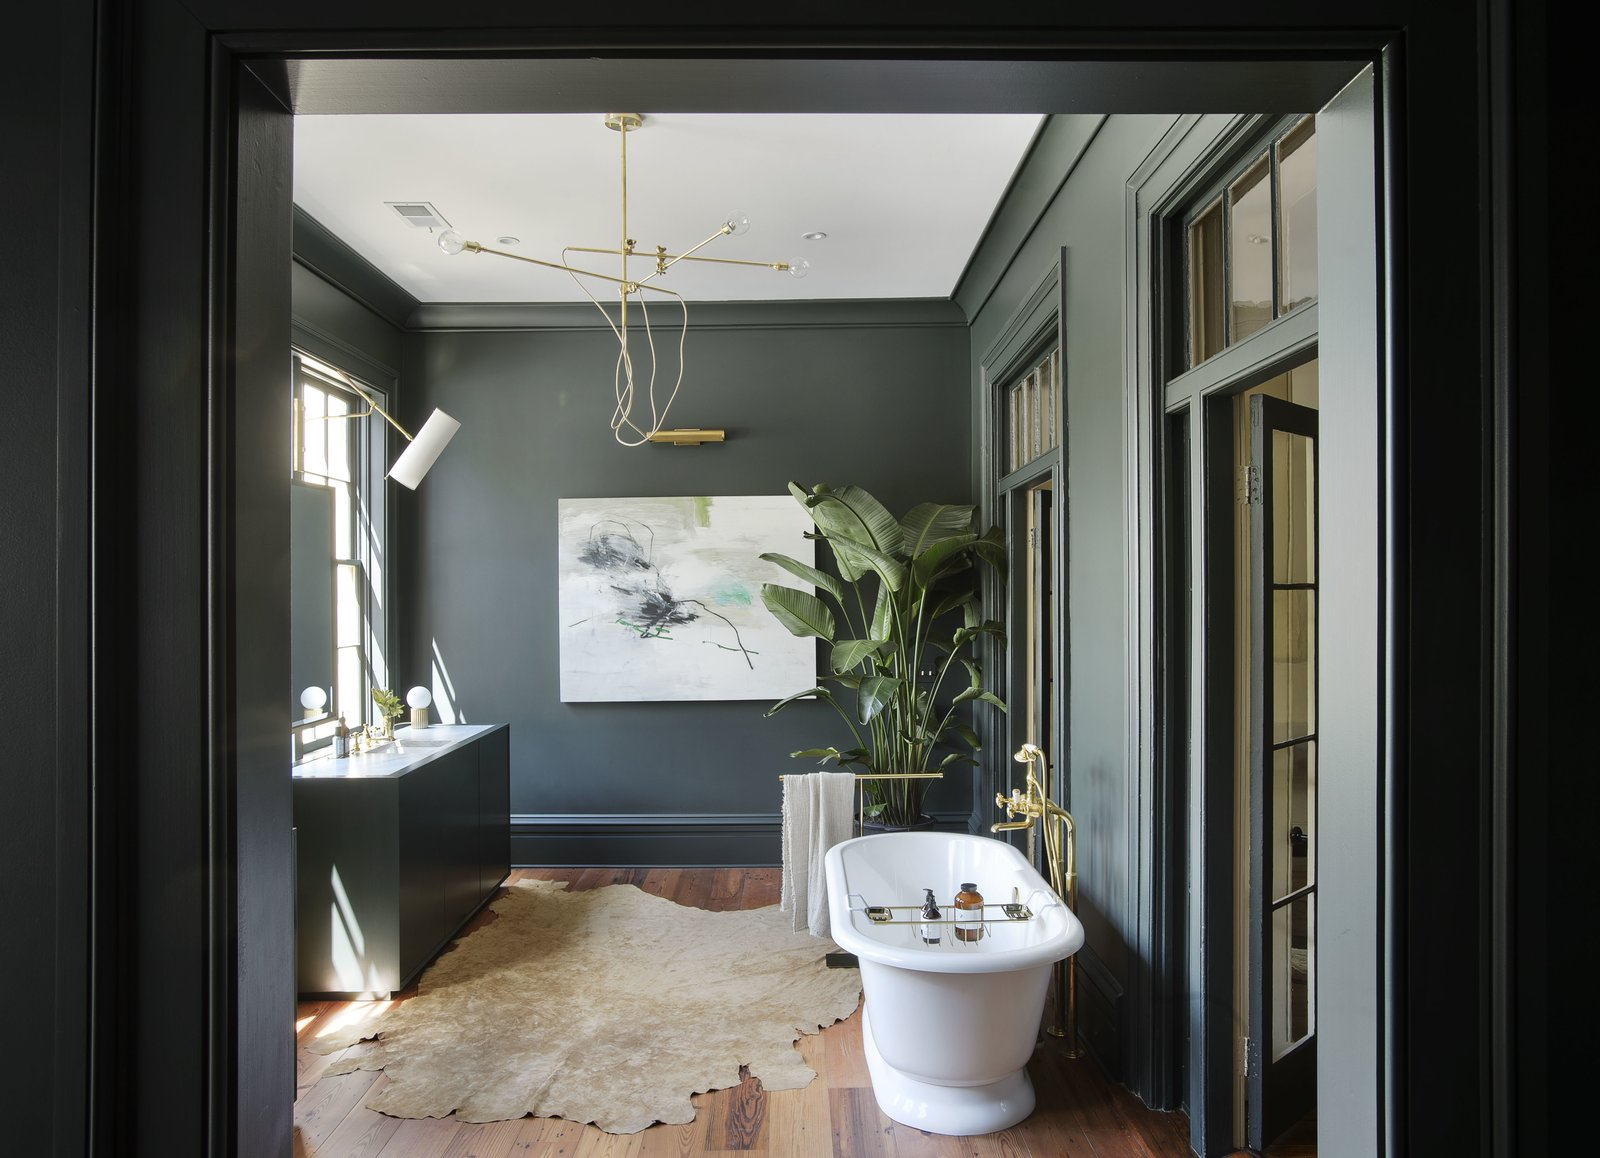 Bathroom Design Ideas: 9 Modern Bathroom Ideas That Go Off The Beaten Path